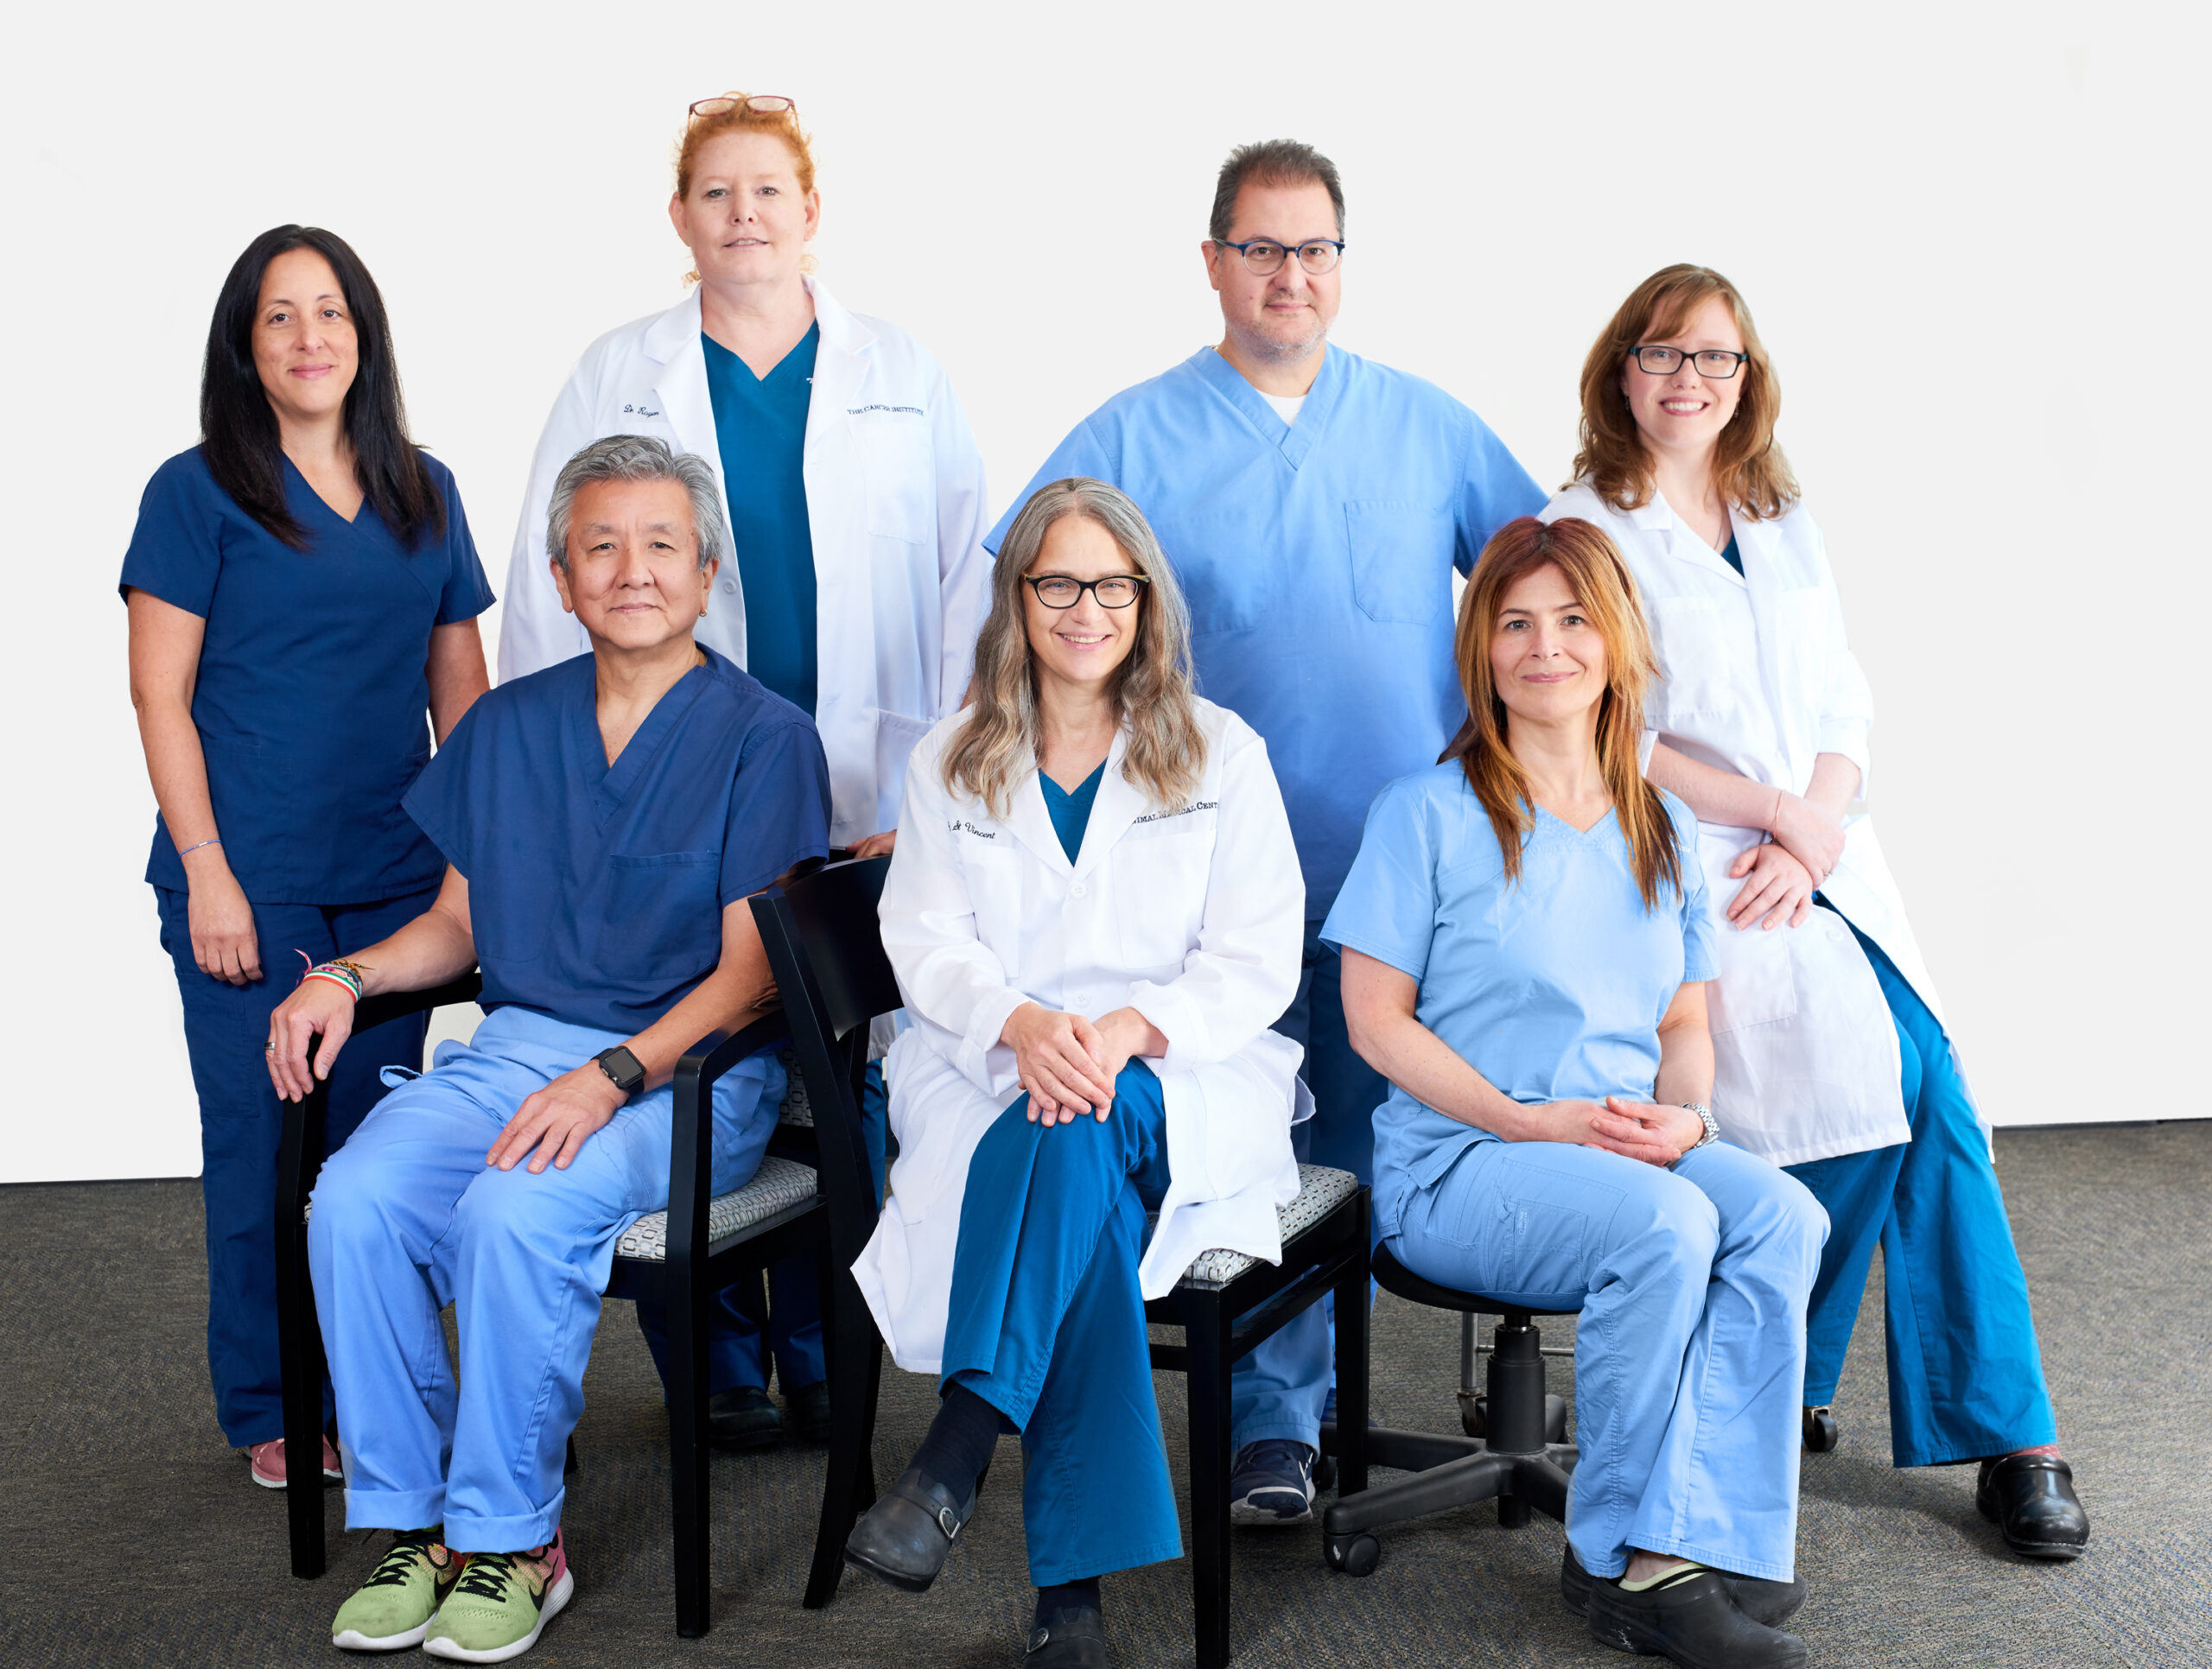 Radiation oncology team